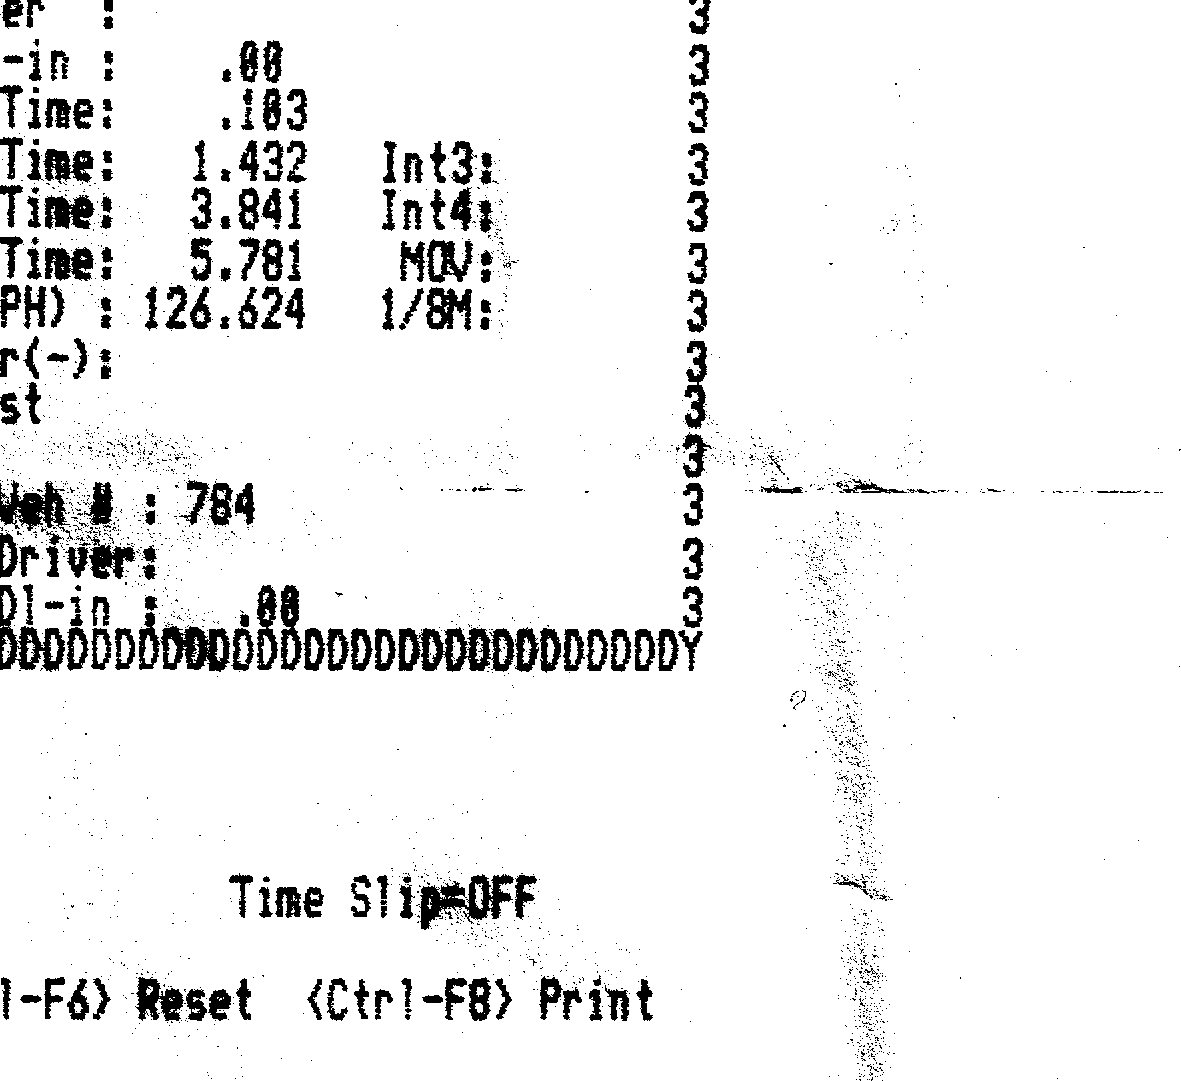 Kawasaki ZX-14 Timeslip Scan